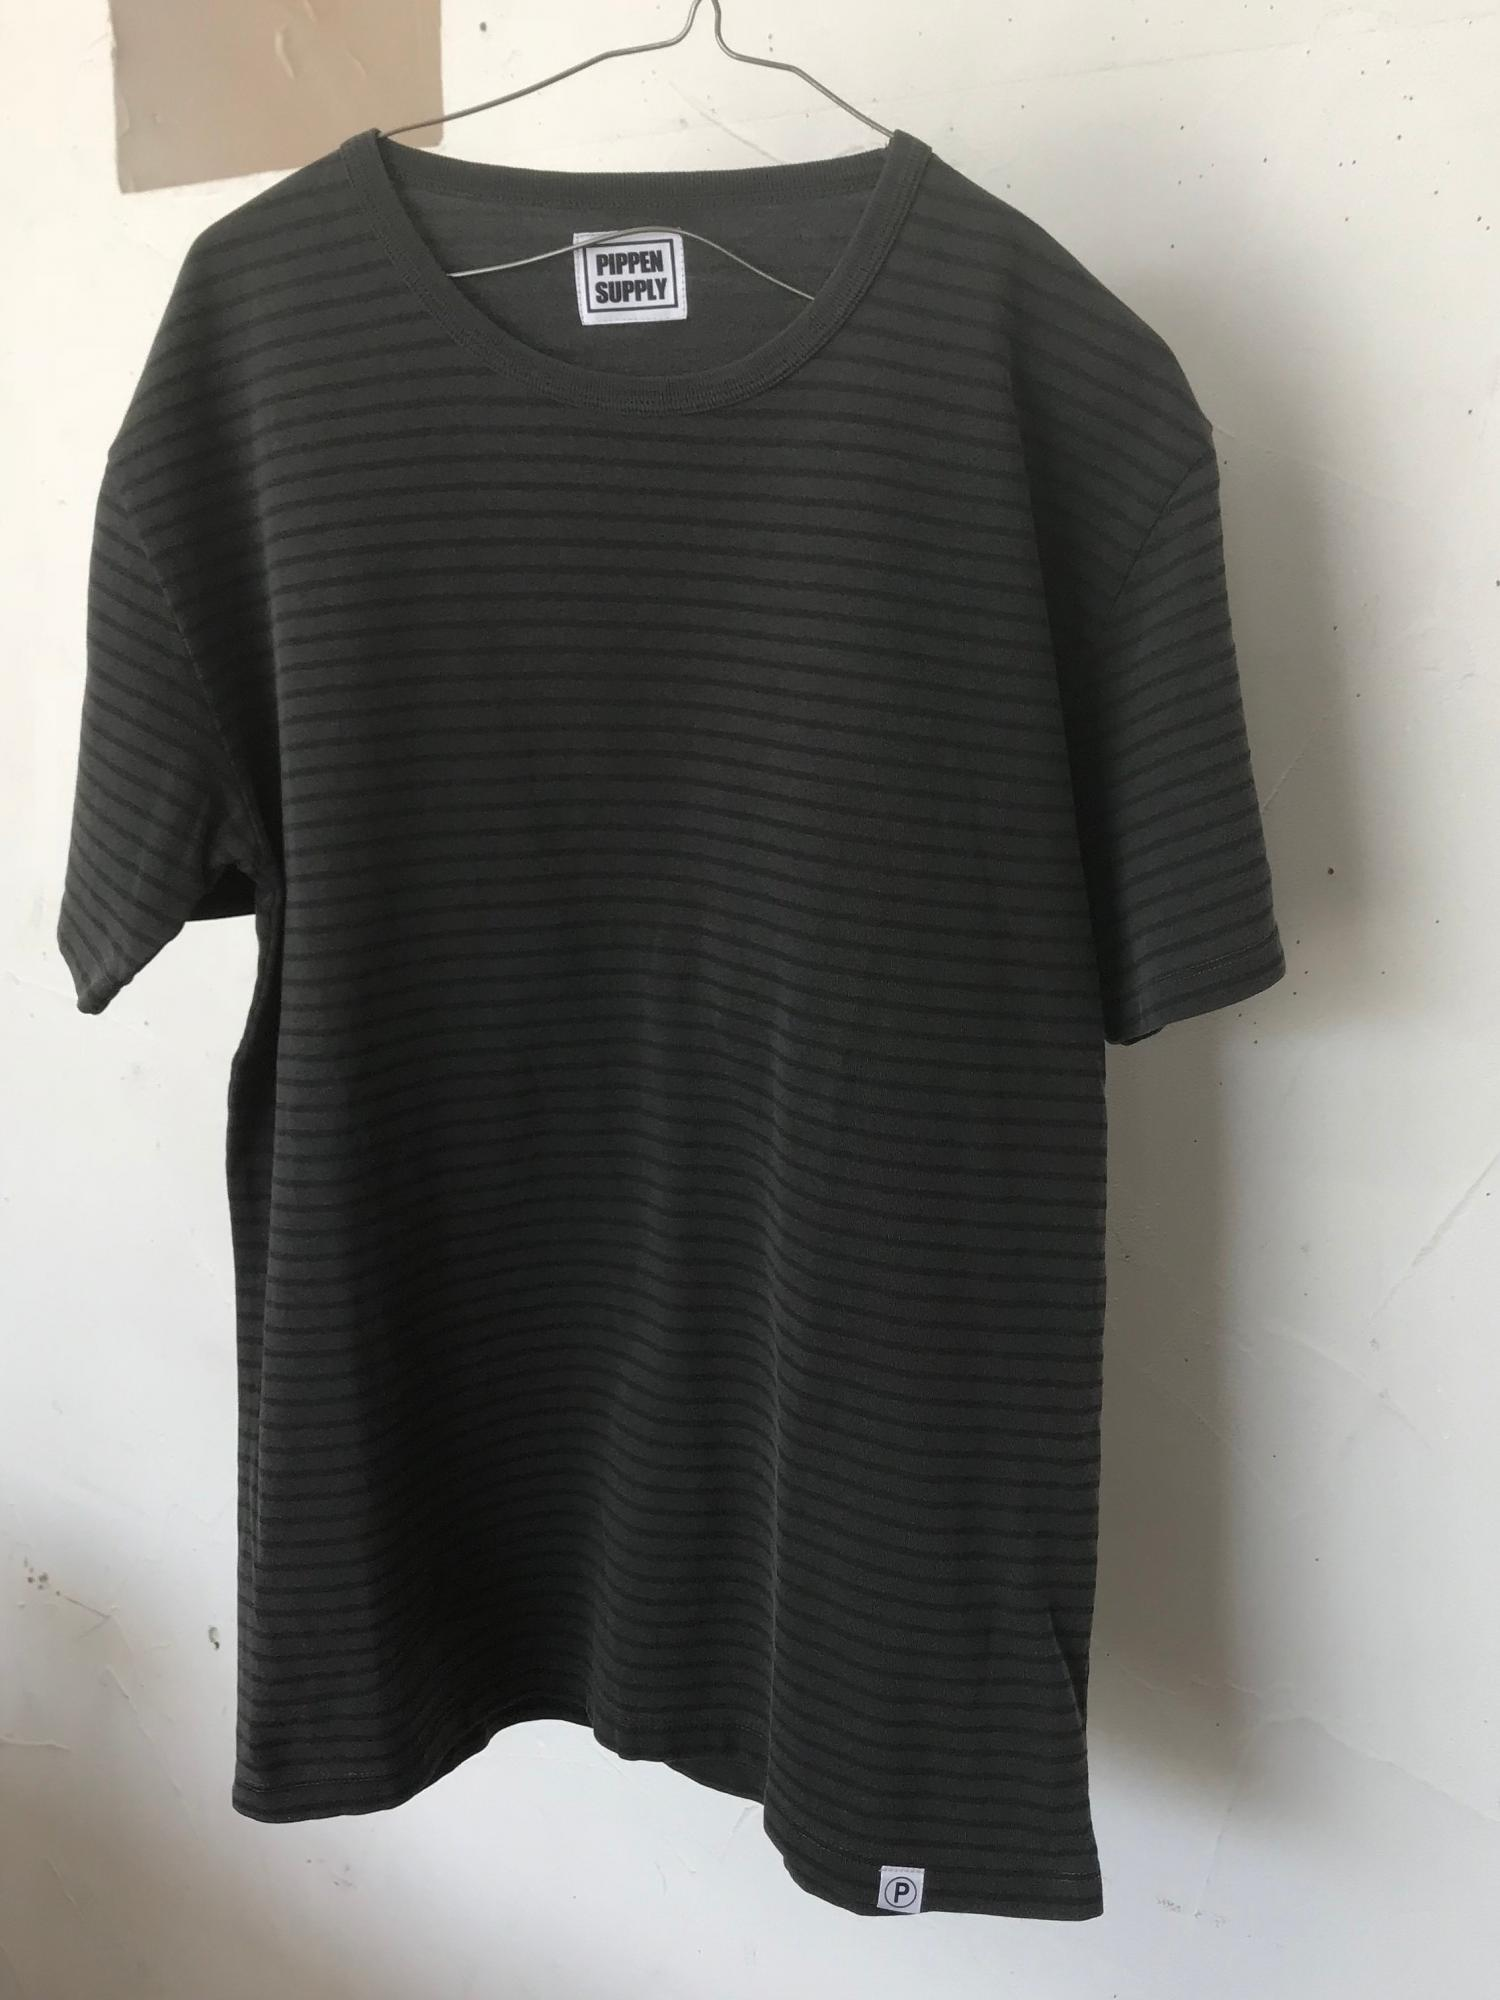 P SUPPLY. NAMINORI BorderTEE  Charcoal border